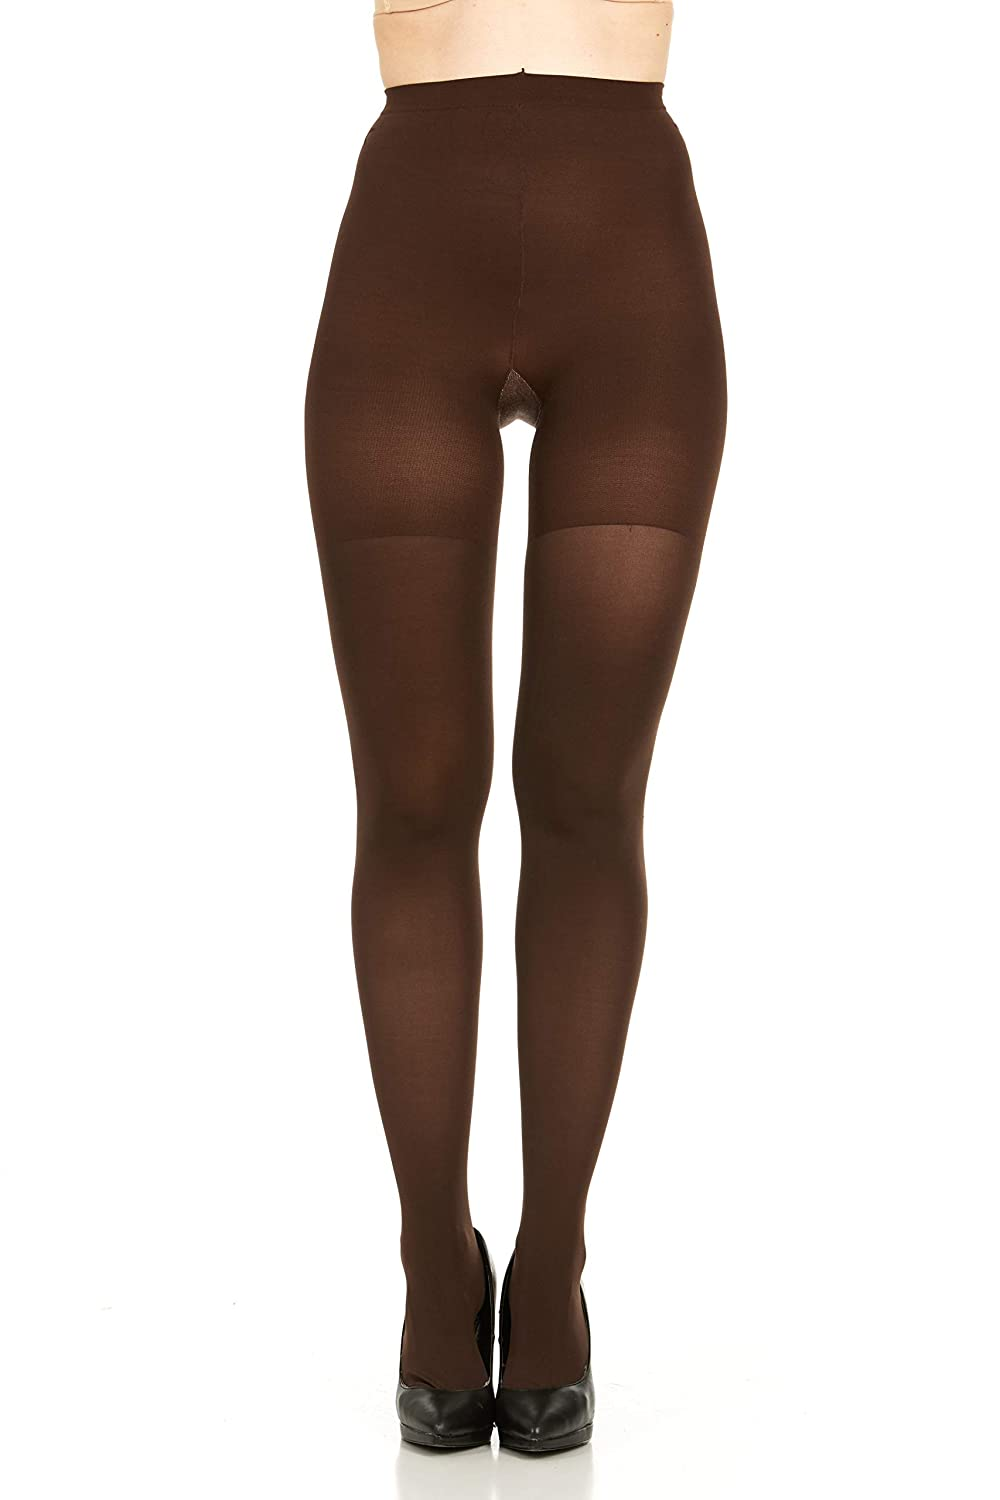 bf769da4b816bf SPANX Star Power by Center-Stage Shaping Brief Tights at Amazon Women's  Clothing store: